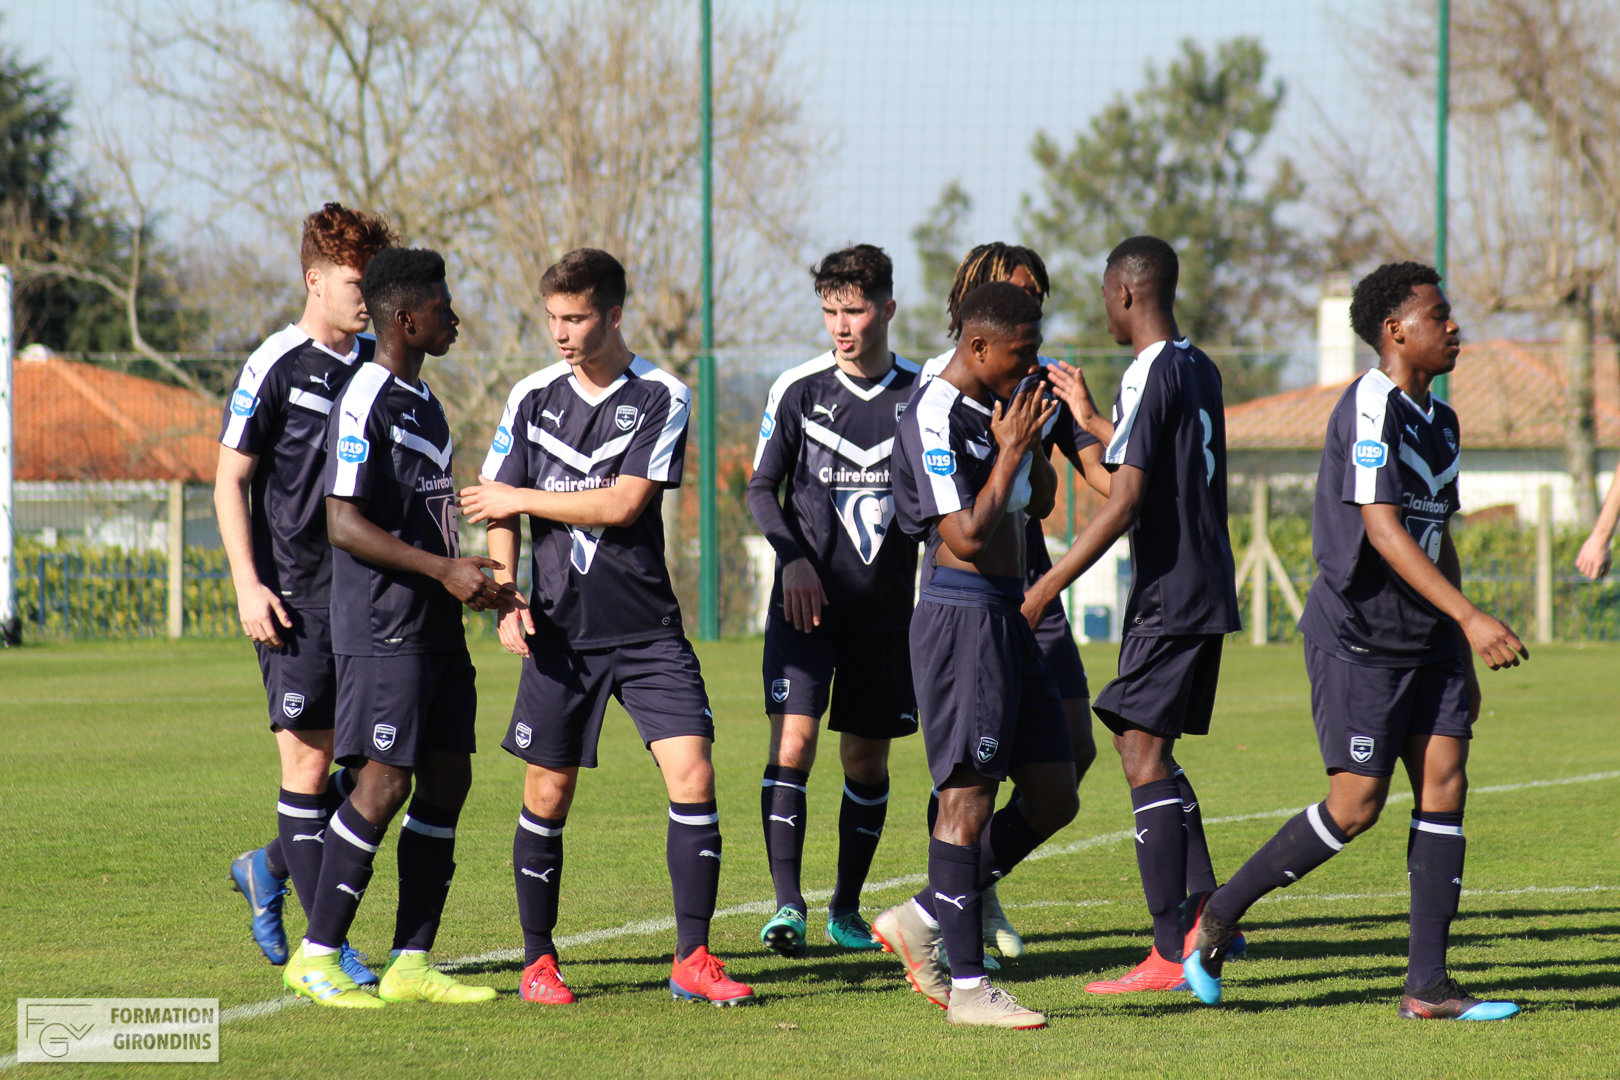 Cfa Girondins : Le groupe pour affronter Torcy - Formation Girondins